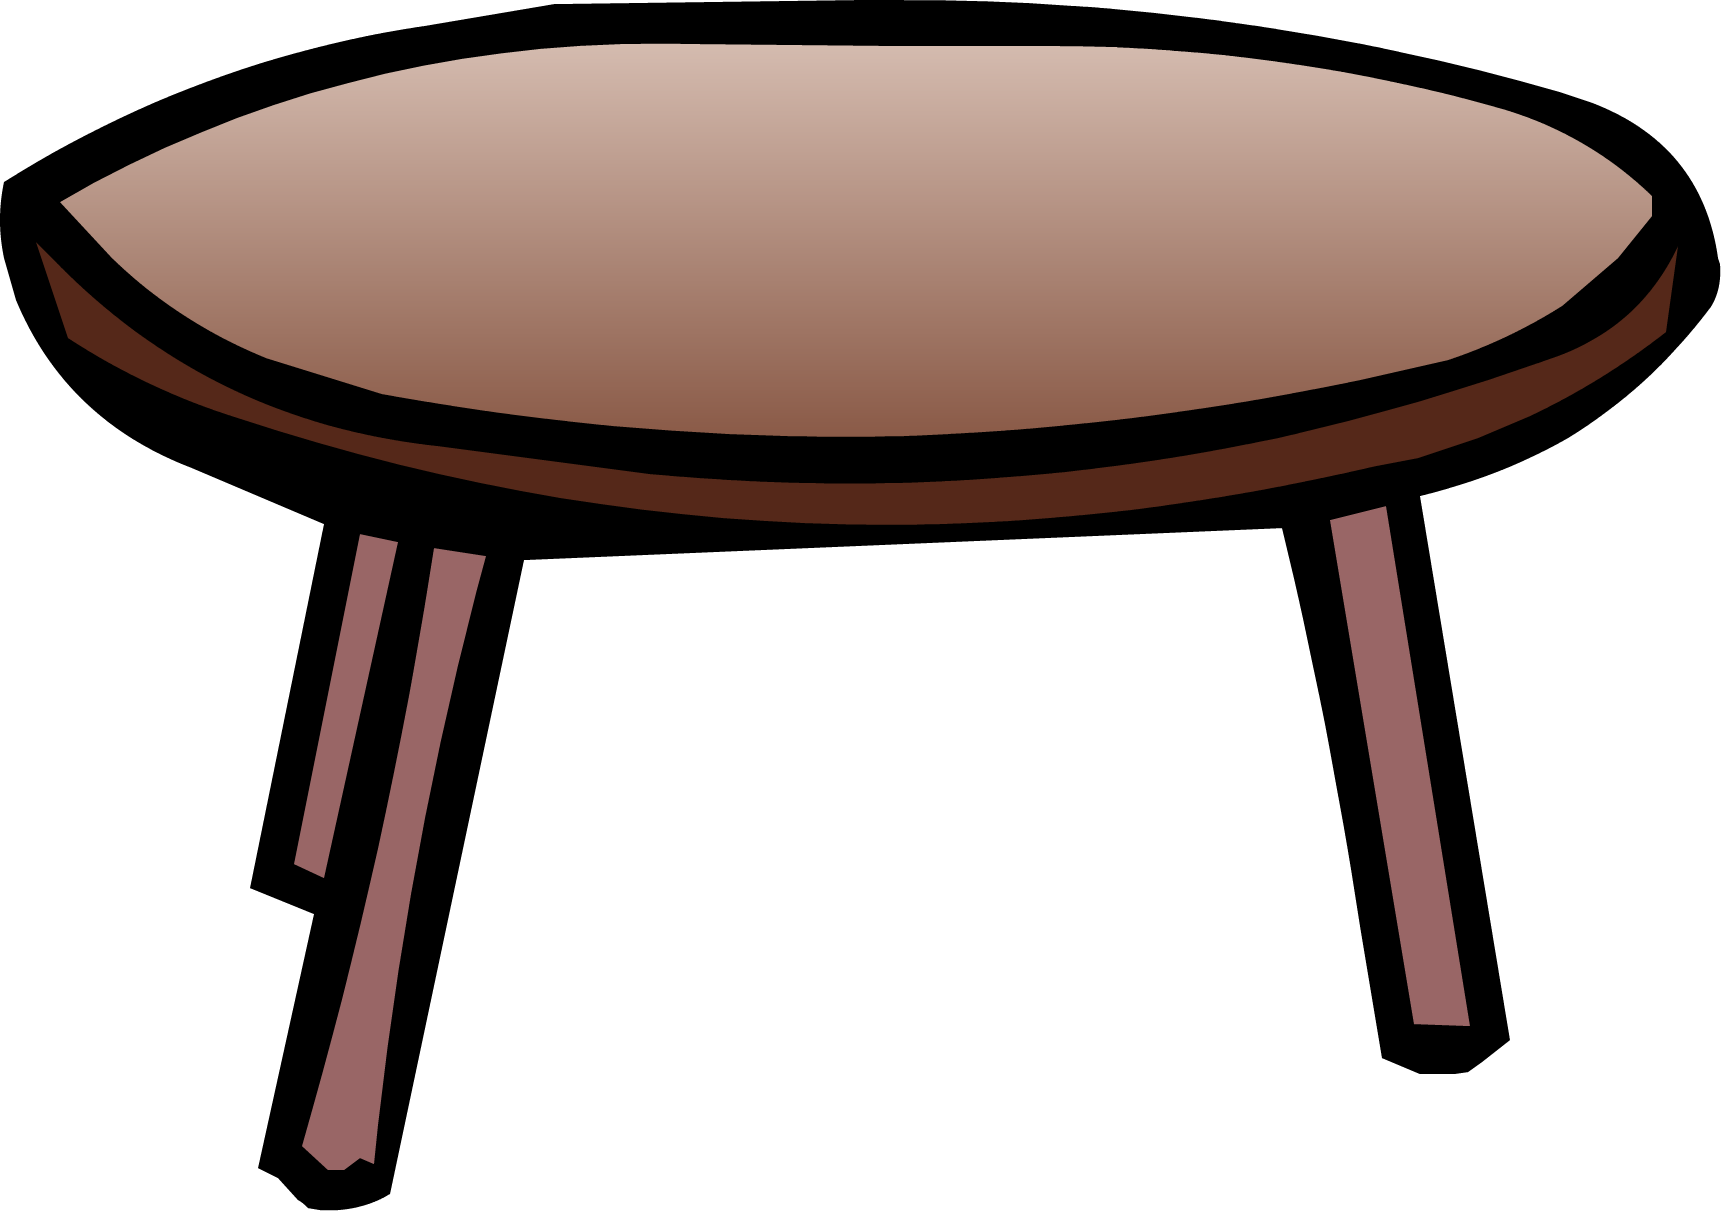 Furniture clipart coffee table Fandom (ID Wiki by 33)